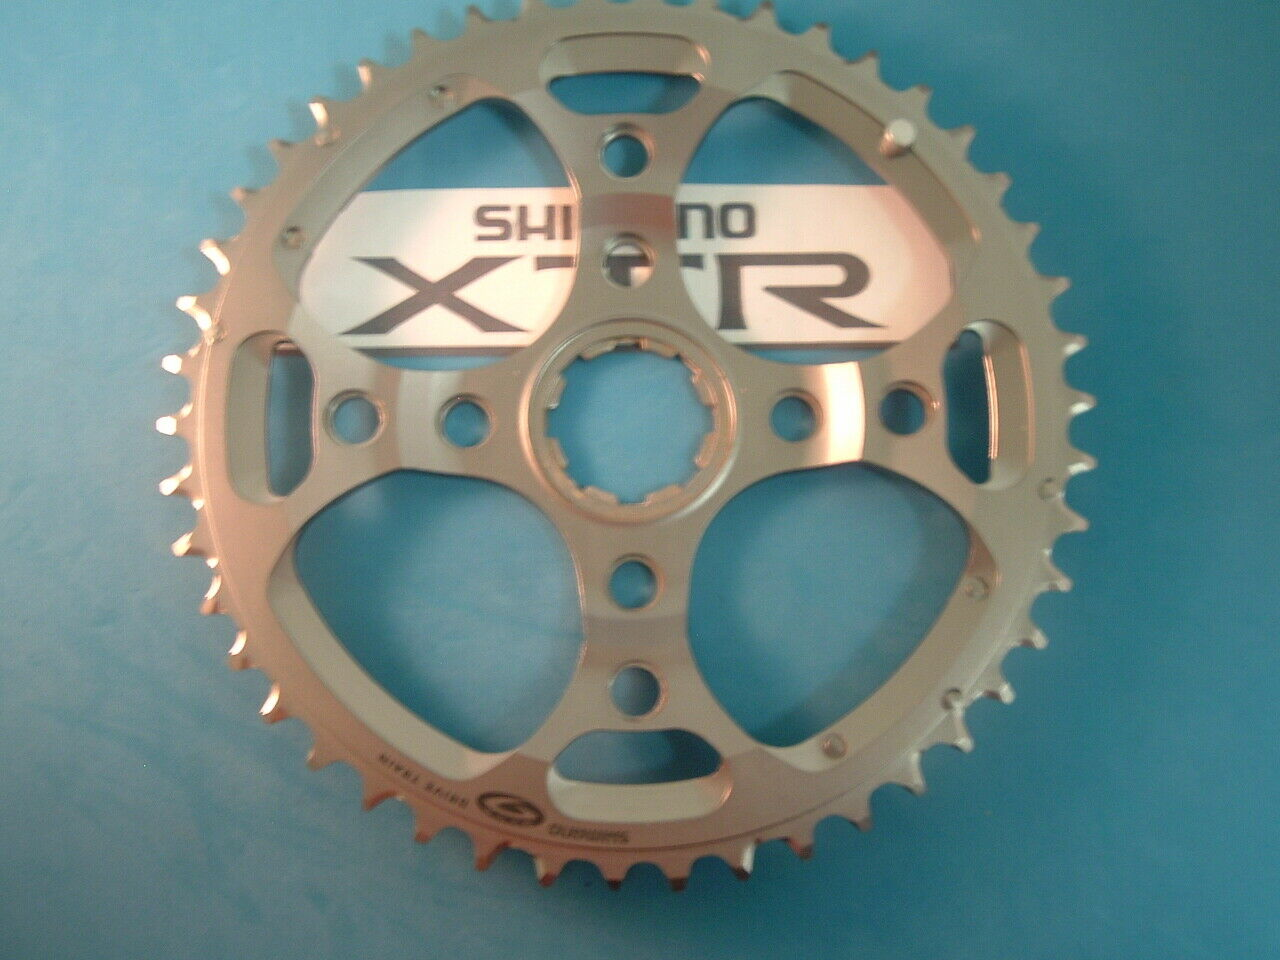 Shimano Xtr Fc-M952-4 46t MTB Chainring- Nuevo   Nos 112bcd- 8 9-speed- To